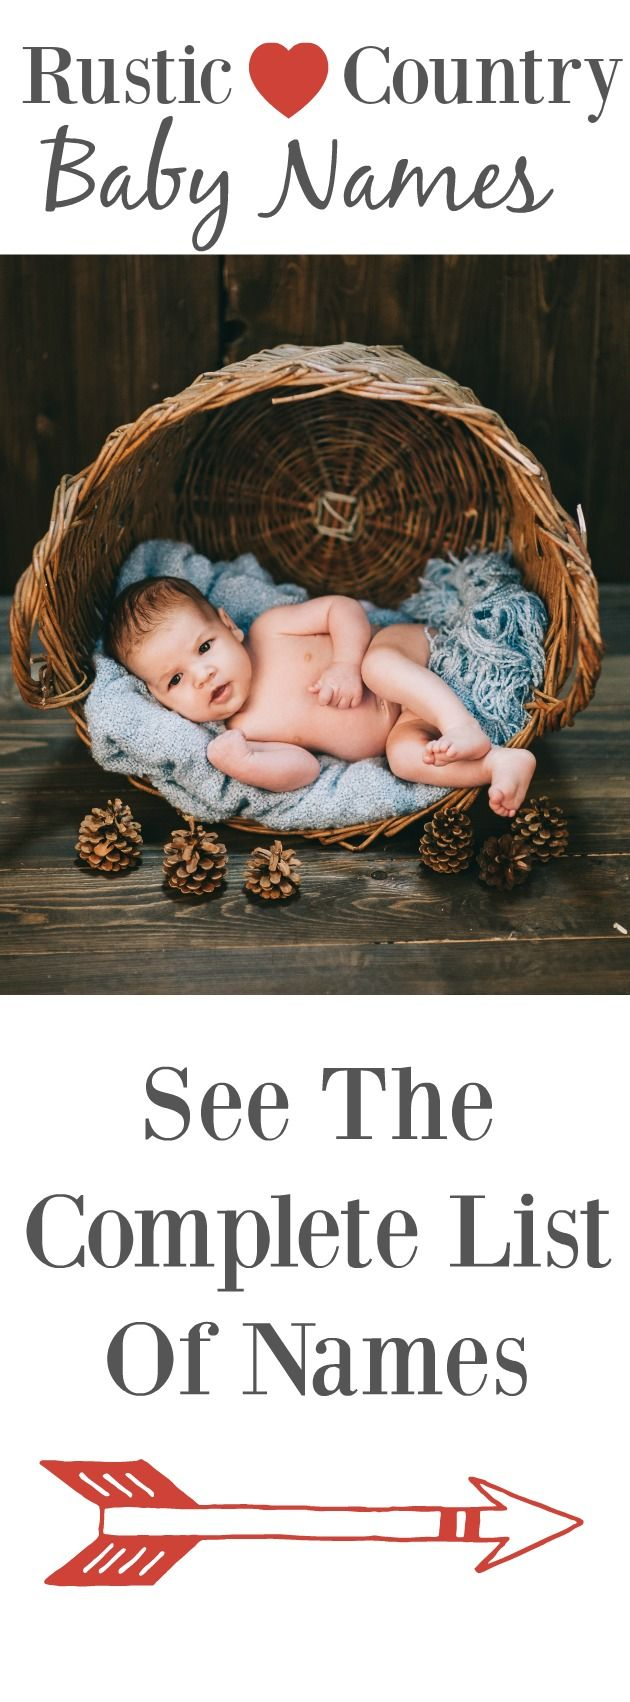 Rustic baby shower ideas are not always that easy to come up with on your own which is why we thought a list of 20 of the best ideas out there would help. When planning a rustic baby shower it is best to turn to Pinterest to find exactly what is trending and what decorations are available. Check out these fun ideas we found while looking around the web at our favorite party sites. Sign | Invitation | Small Sign | Mason Jars | Pencils Party Setup | Party Display | Dessert Display Gift Sign…